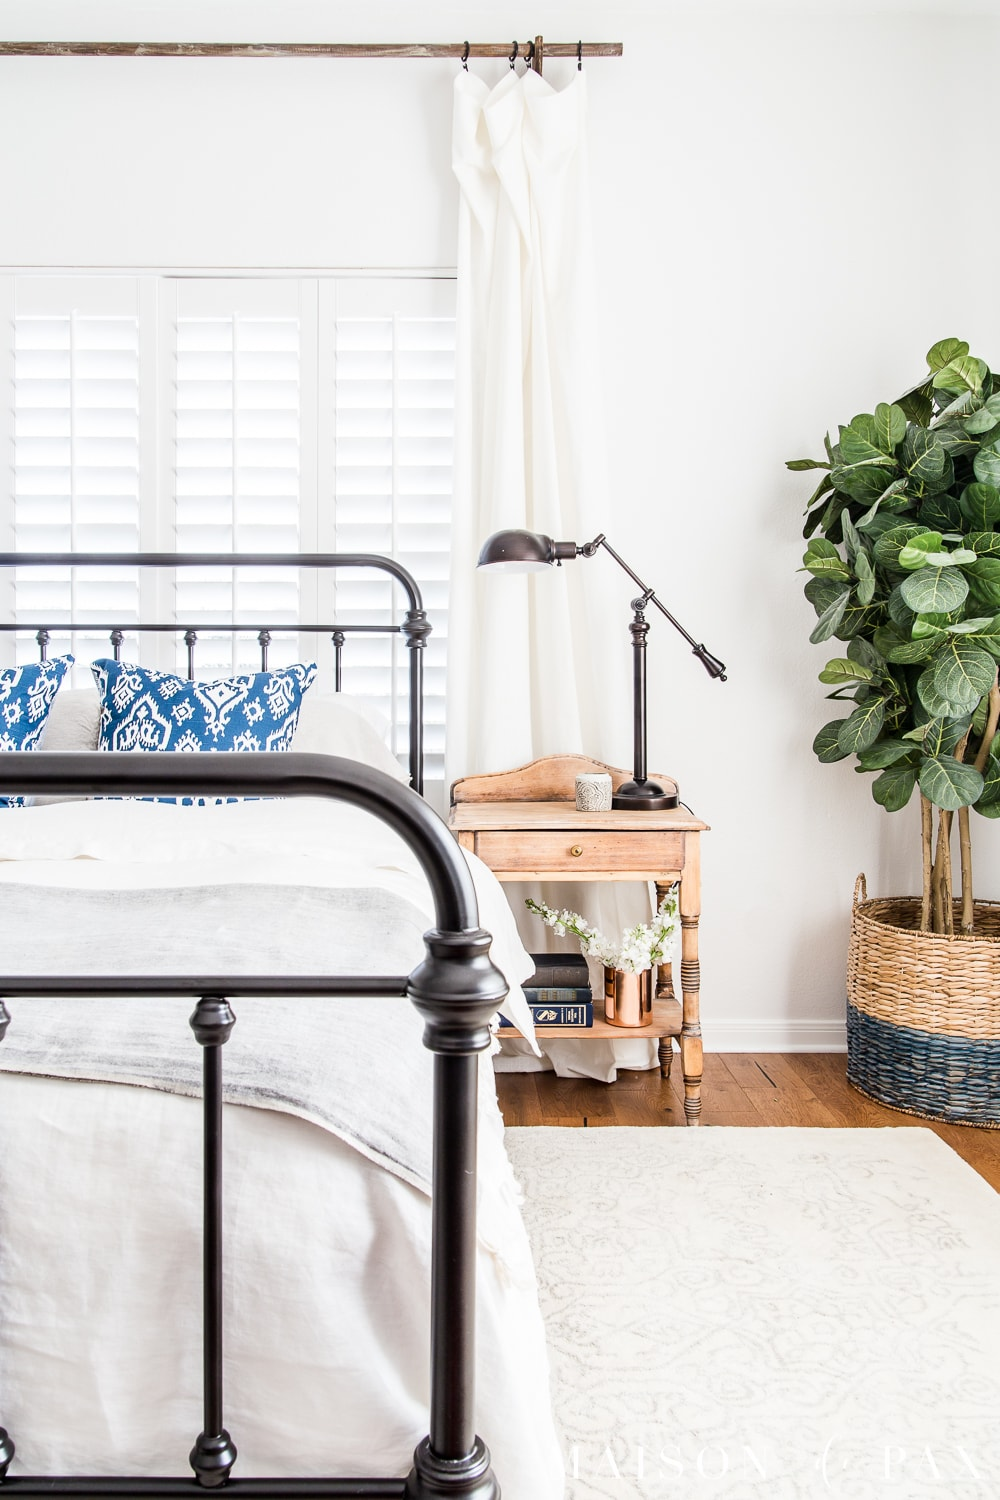 Love the iron bed and raw wood nightstand! Looking to add a seasonal touch to your bedroom?  Don't miss these incredibly simple master bedroom decorating ideas for spring! #springdecor #springbedroom #nightstand #modernfarmhouse